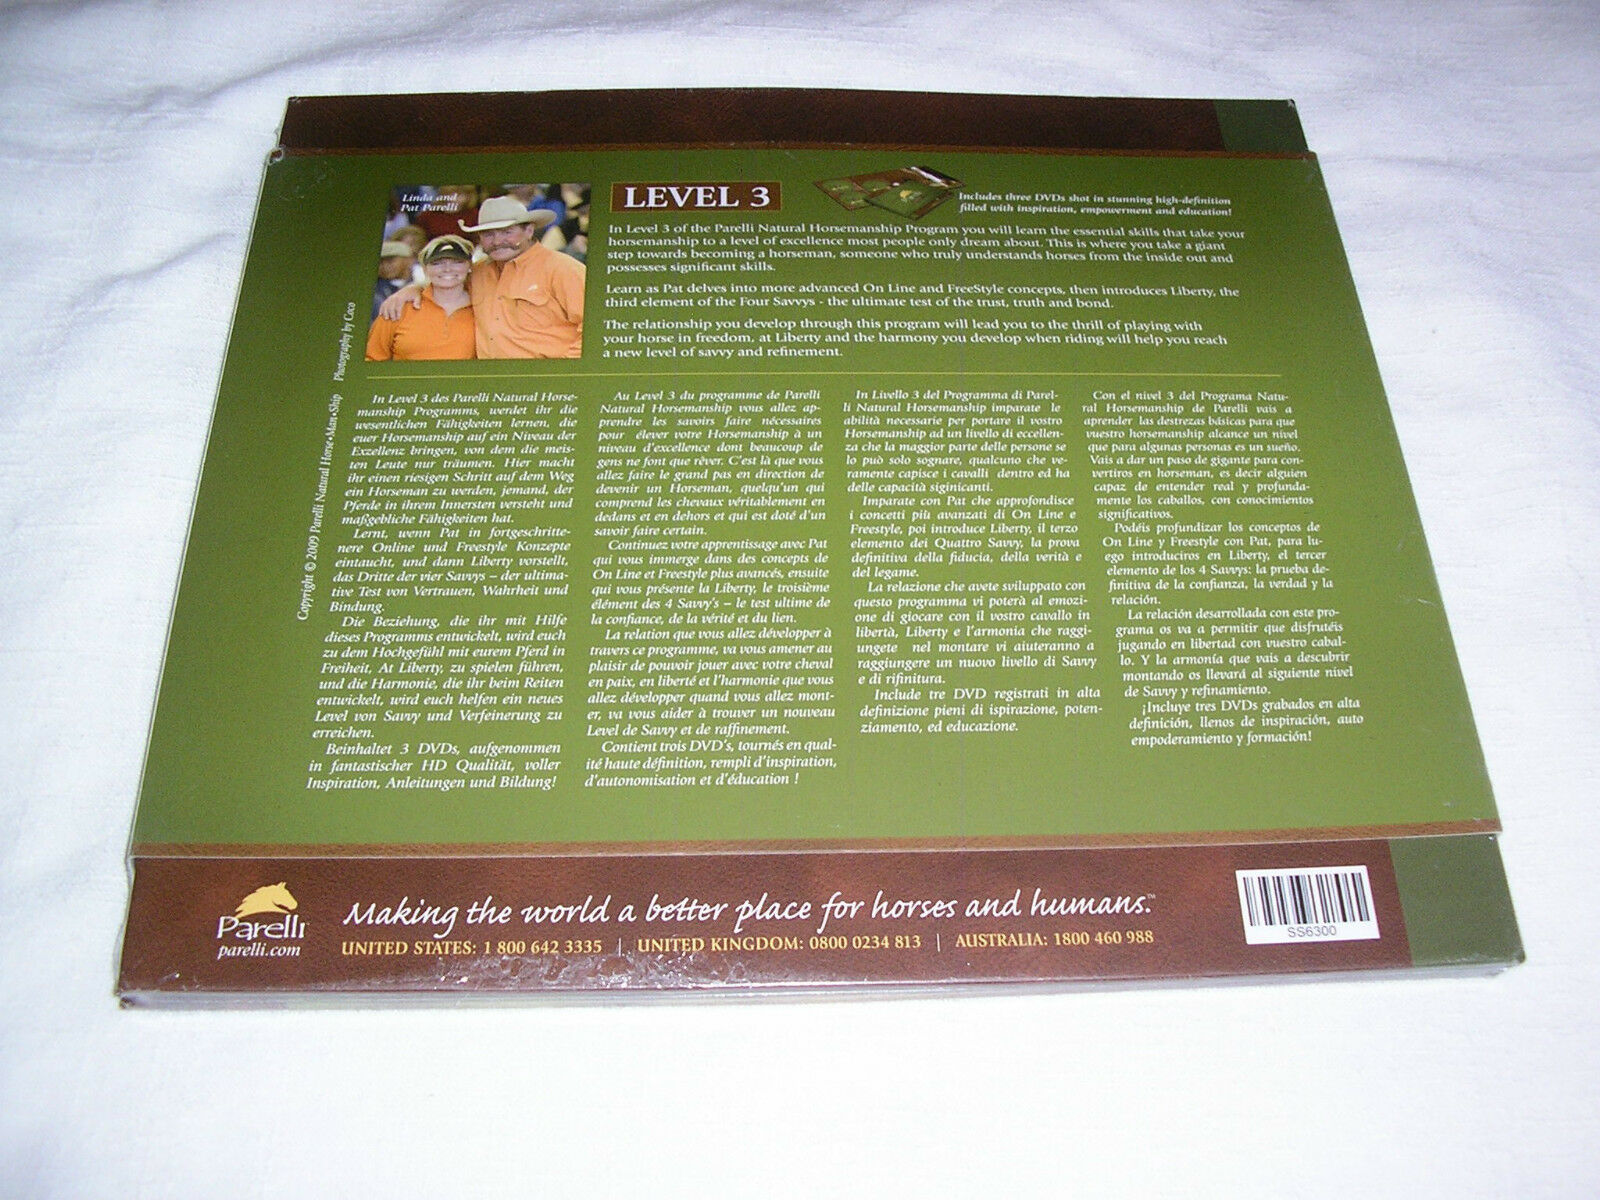 Parelli Pathways Level 3 - NATURAL HORSE MSRP TRAINING  (3 DVD) MSRP HORSE 199 - EXCELLENT 272e48